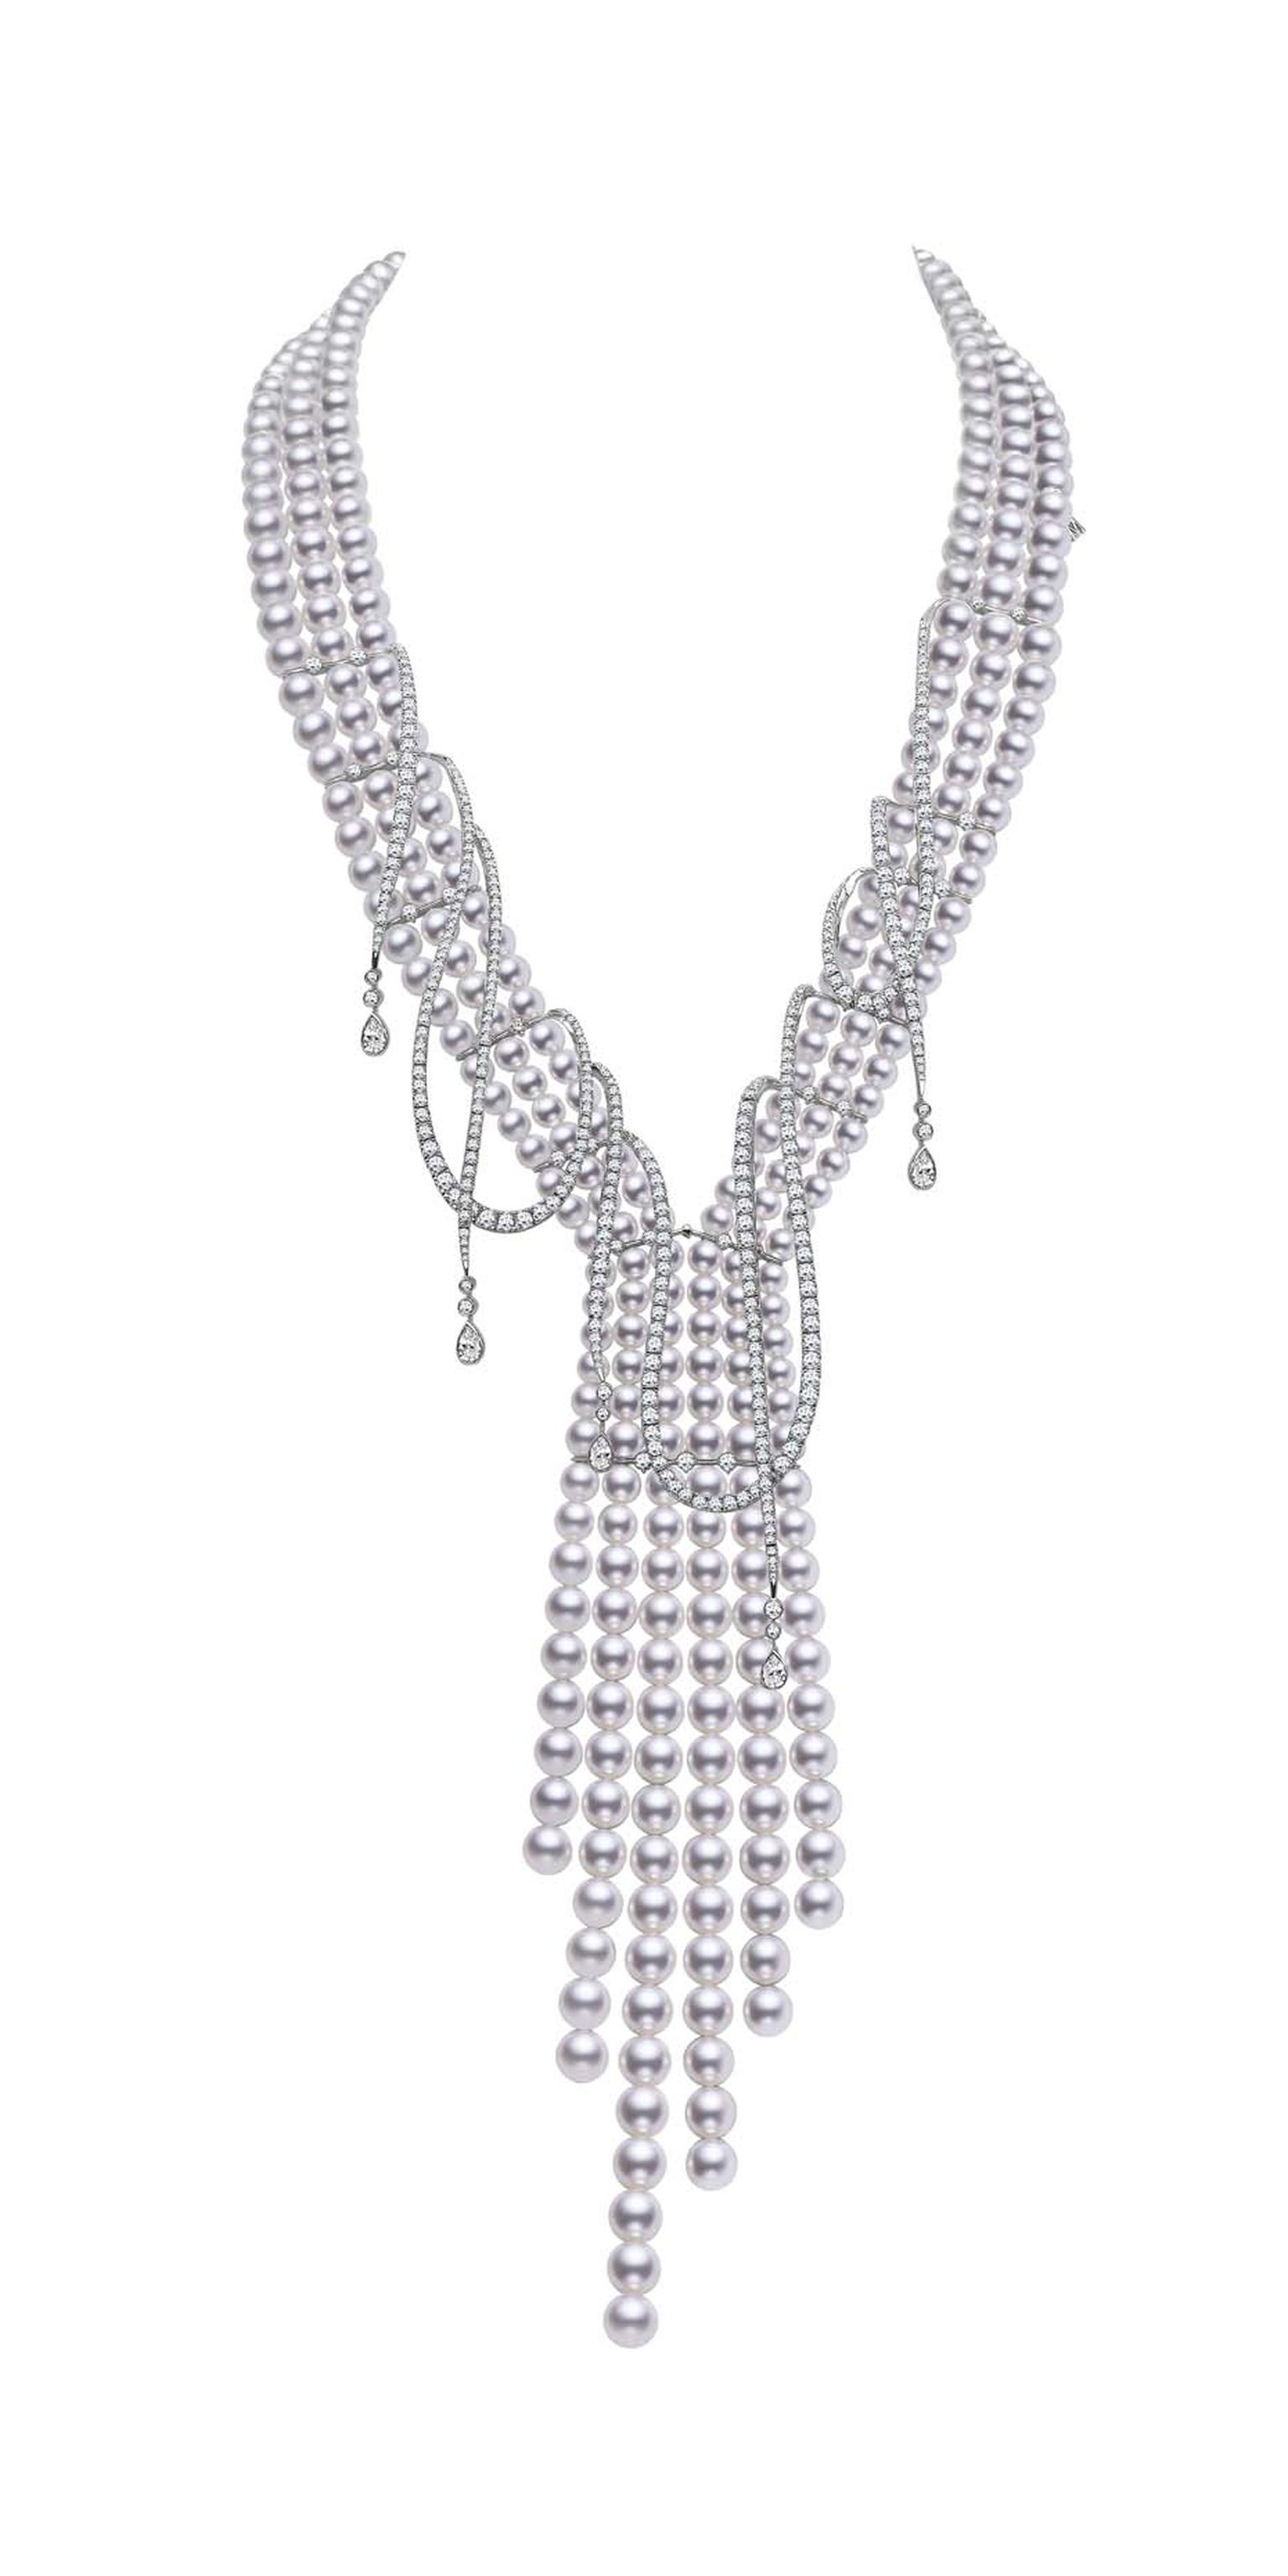 Mikimoto Regalia Collection Ayoka Cascade necklace featuring baroque South Sea pearls and diamonds